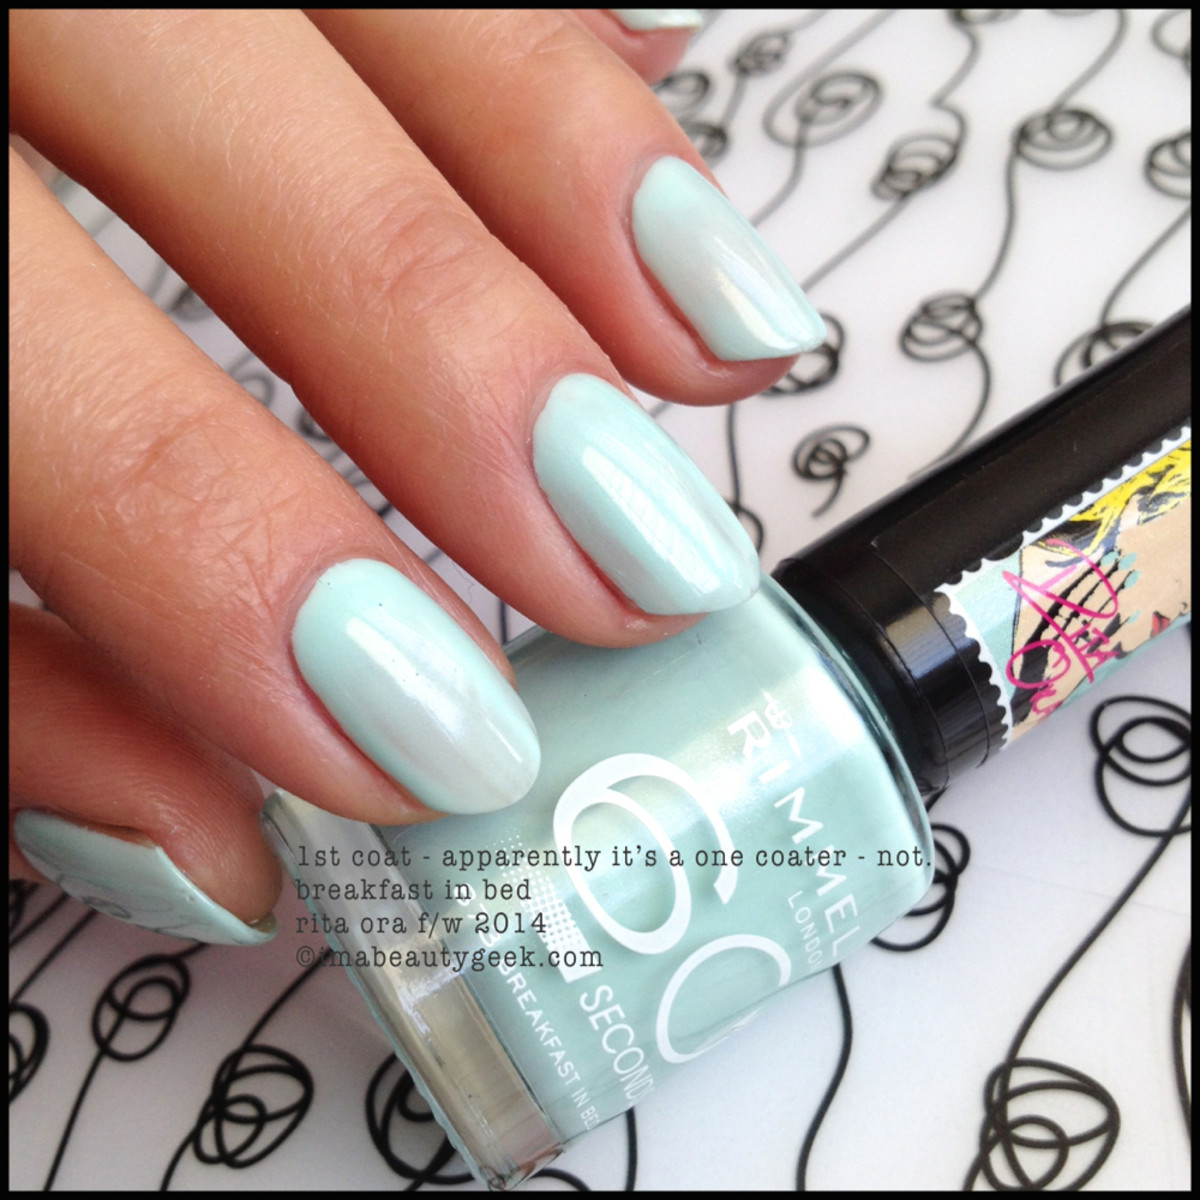 Rimmel Rita Ora 2014 Breakfast in Bed 1 coat